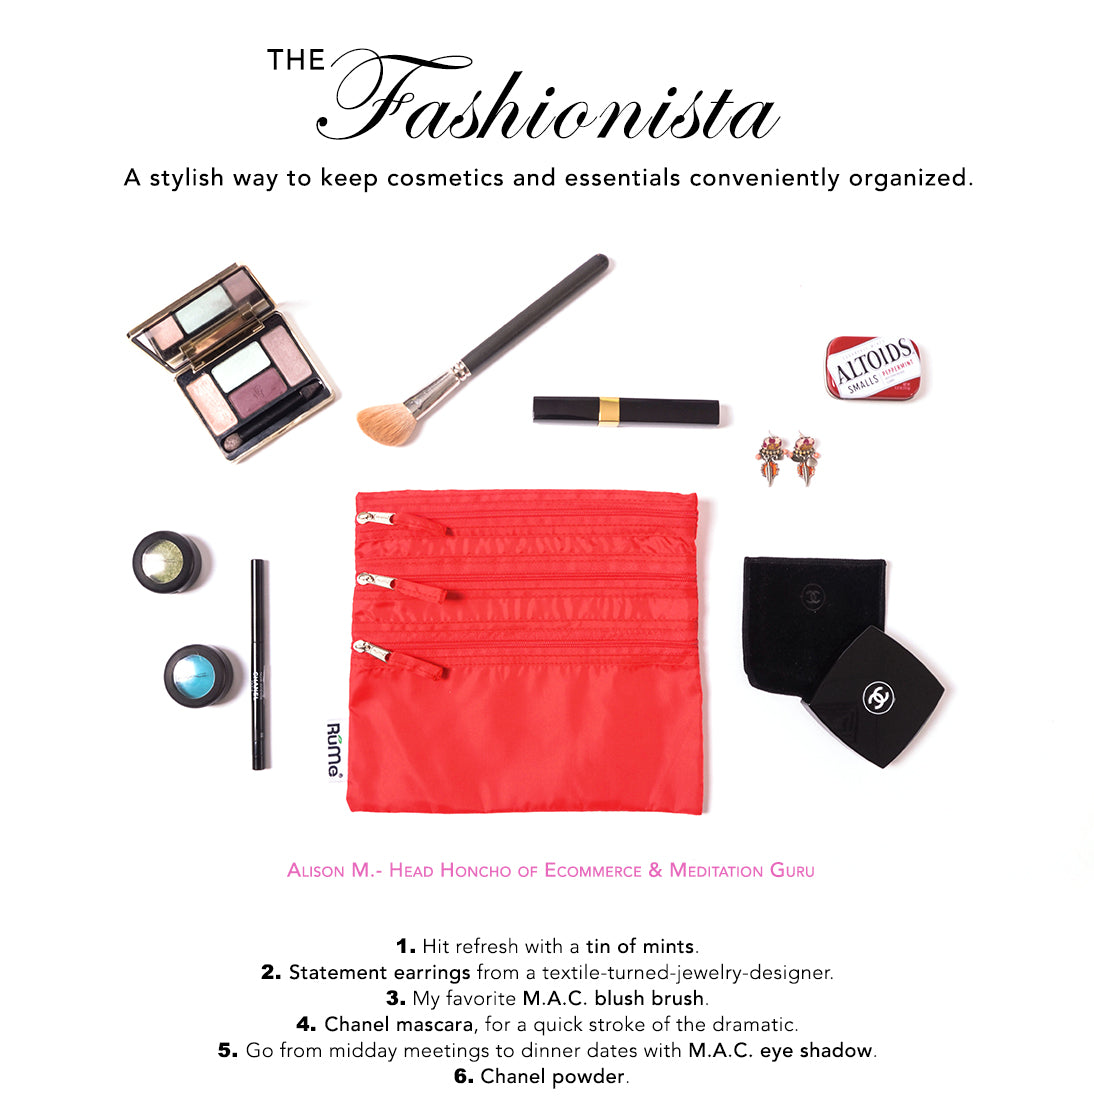 The Fashionista | Make midday touch-ups feel a little more glamourous.